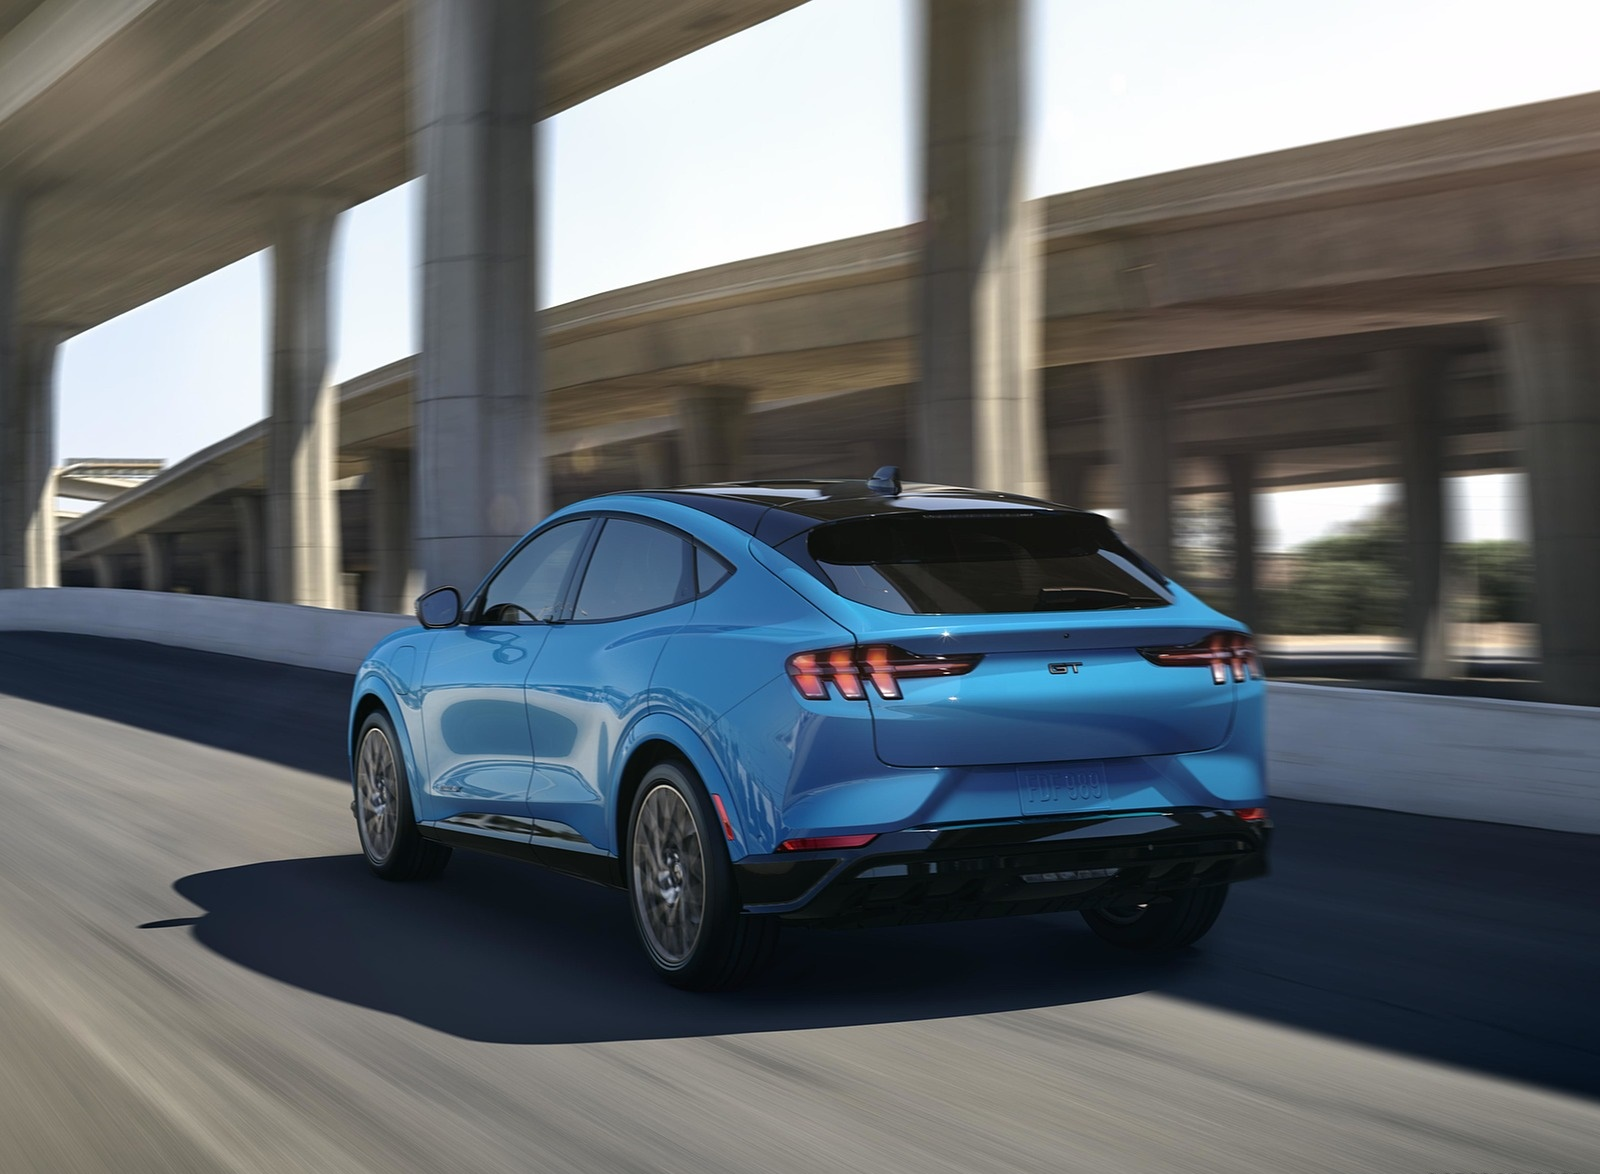 2021 Ford Mustang Mach-E Electric SUV Rear Three-Quarter Wallpapers (7)